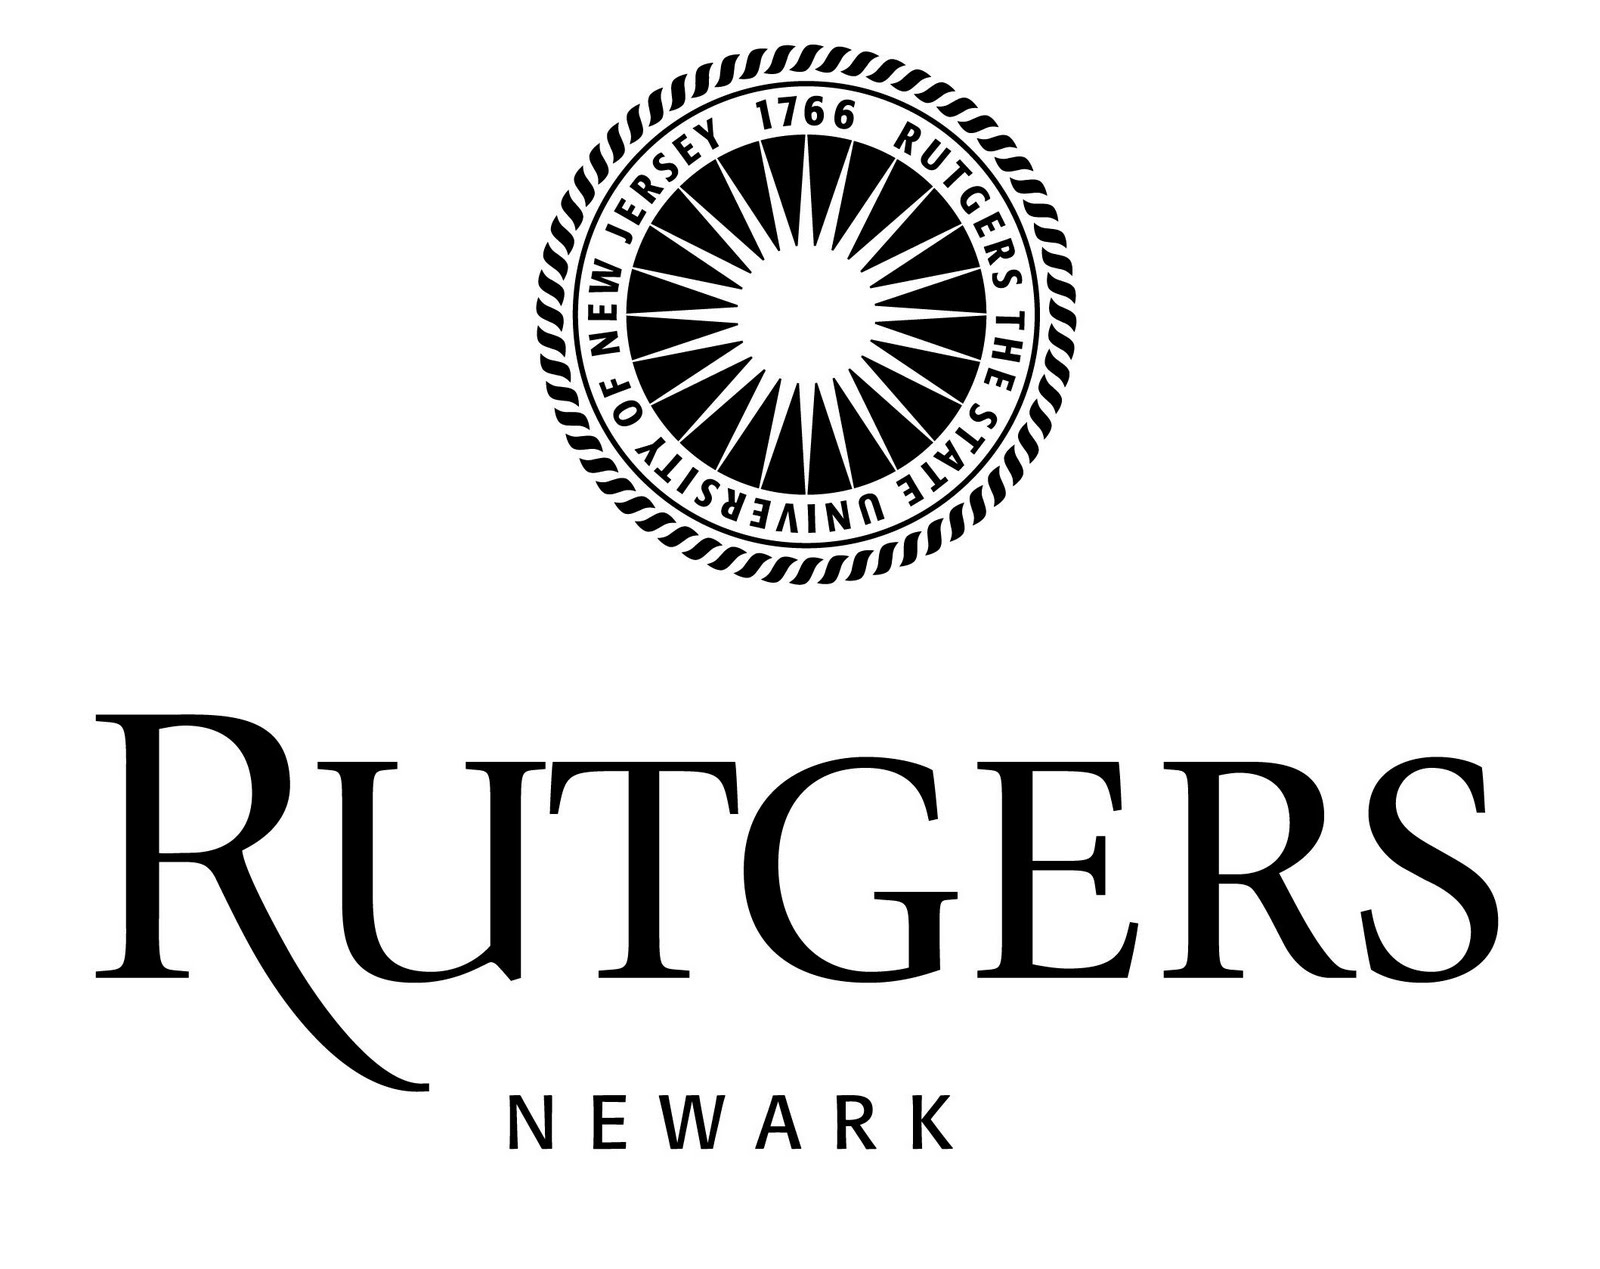 Rutgers Newark black and white logo 2007